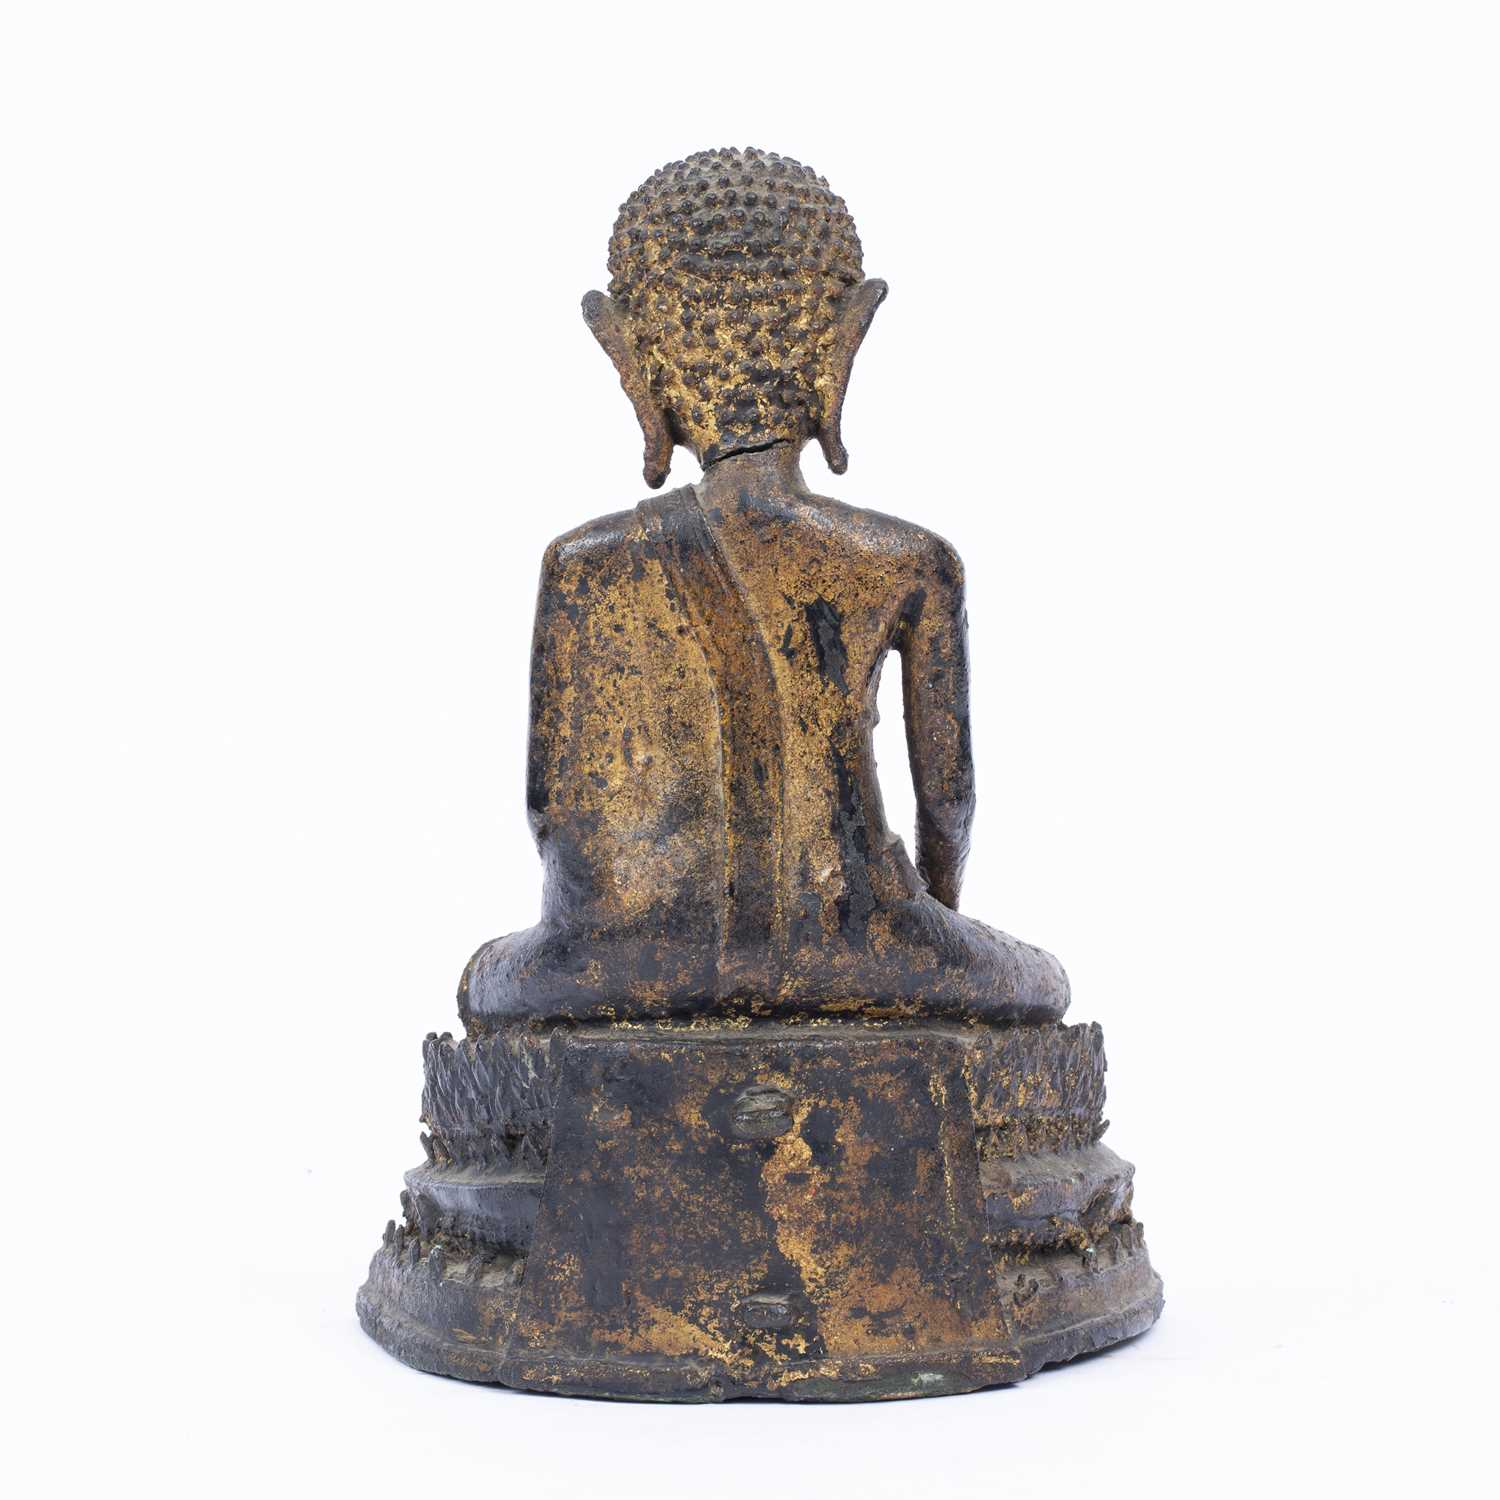 An antique Thai bronze seated Buddha, formerly gilded on an integral stepped base, 25.5cm high - Image 2 of 3